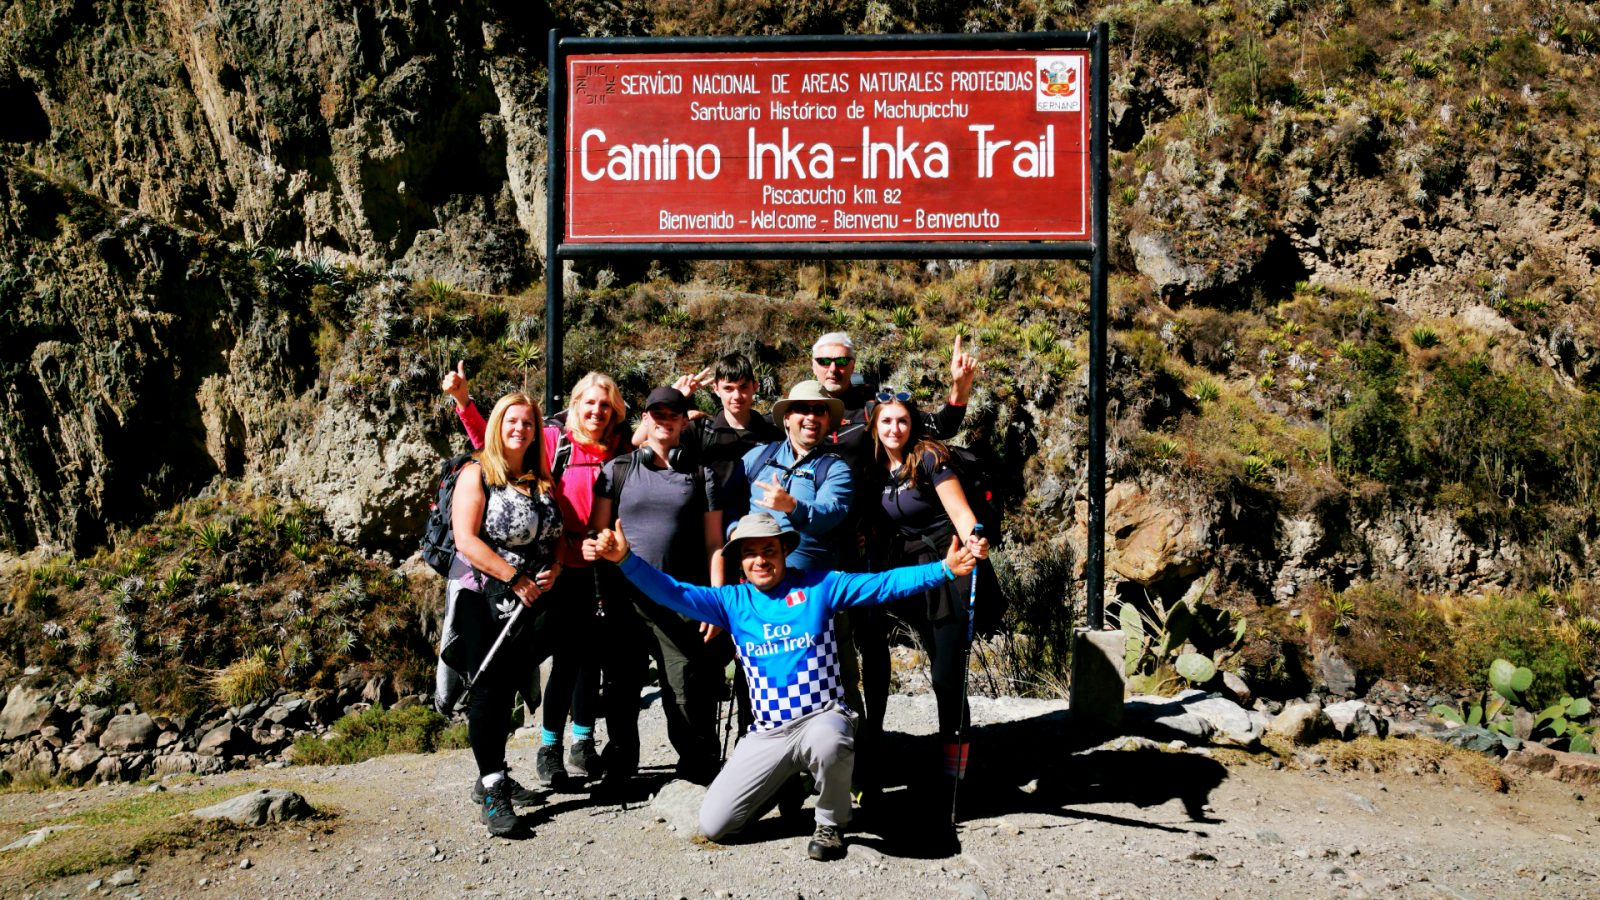 CLASSIC INCA TRAIL DAY 1 BY INKA TRAIL TREK